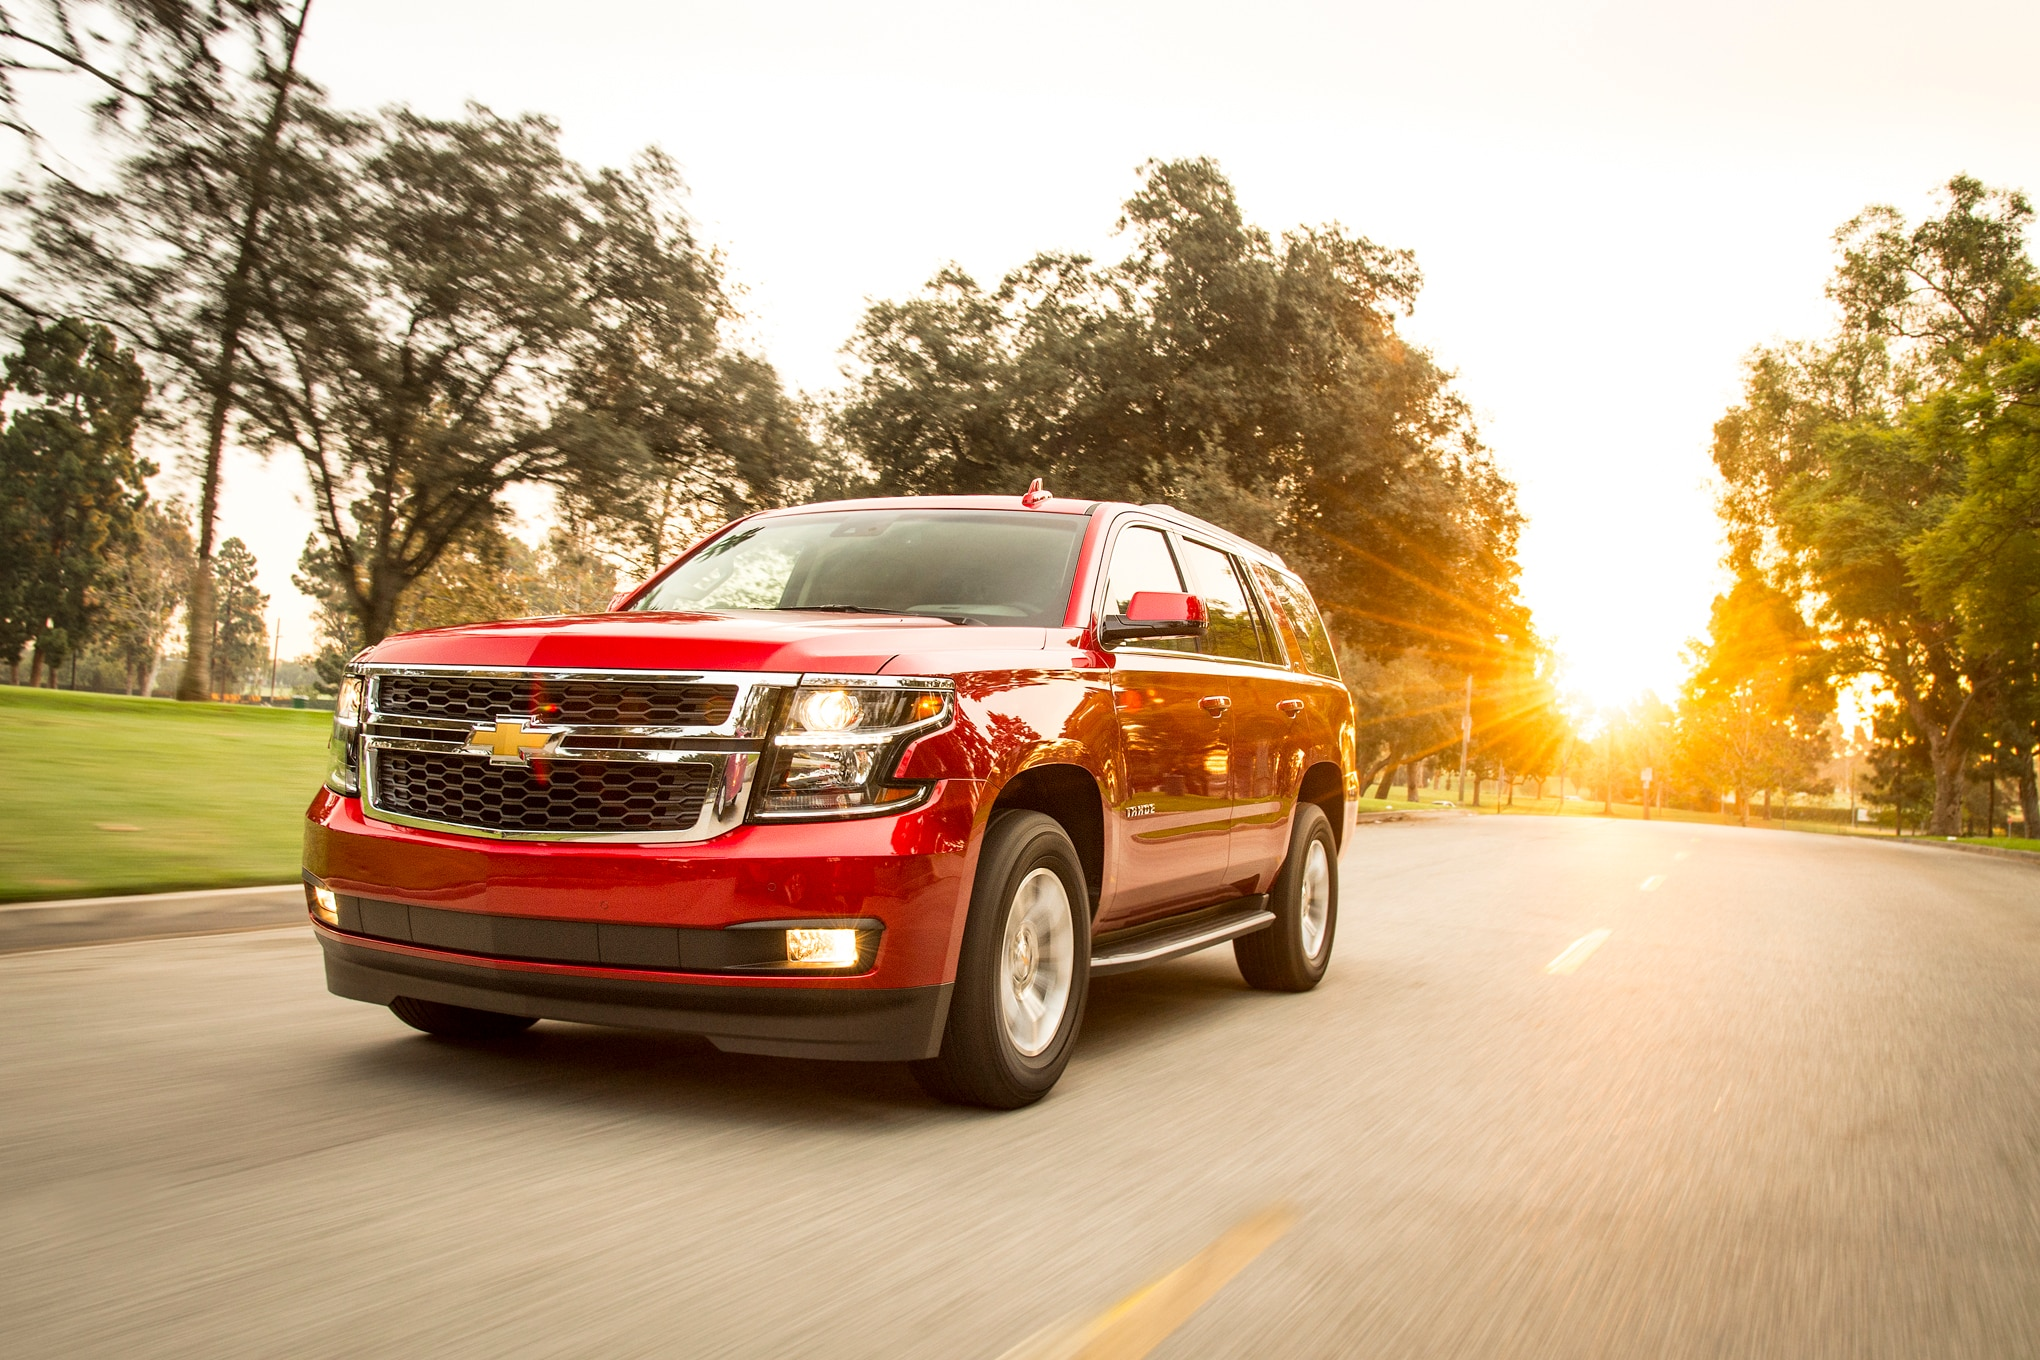 2015 Chevrolet Tahoe LT Front Three Quarter In Motion 04